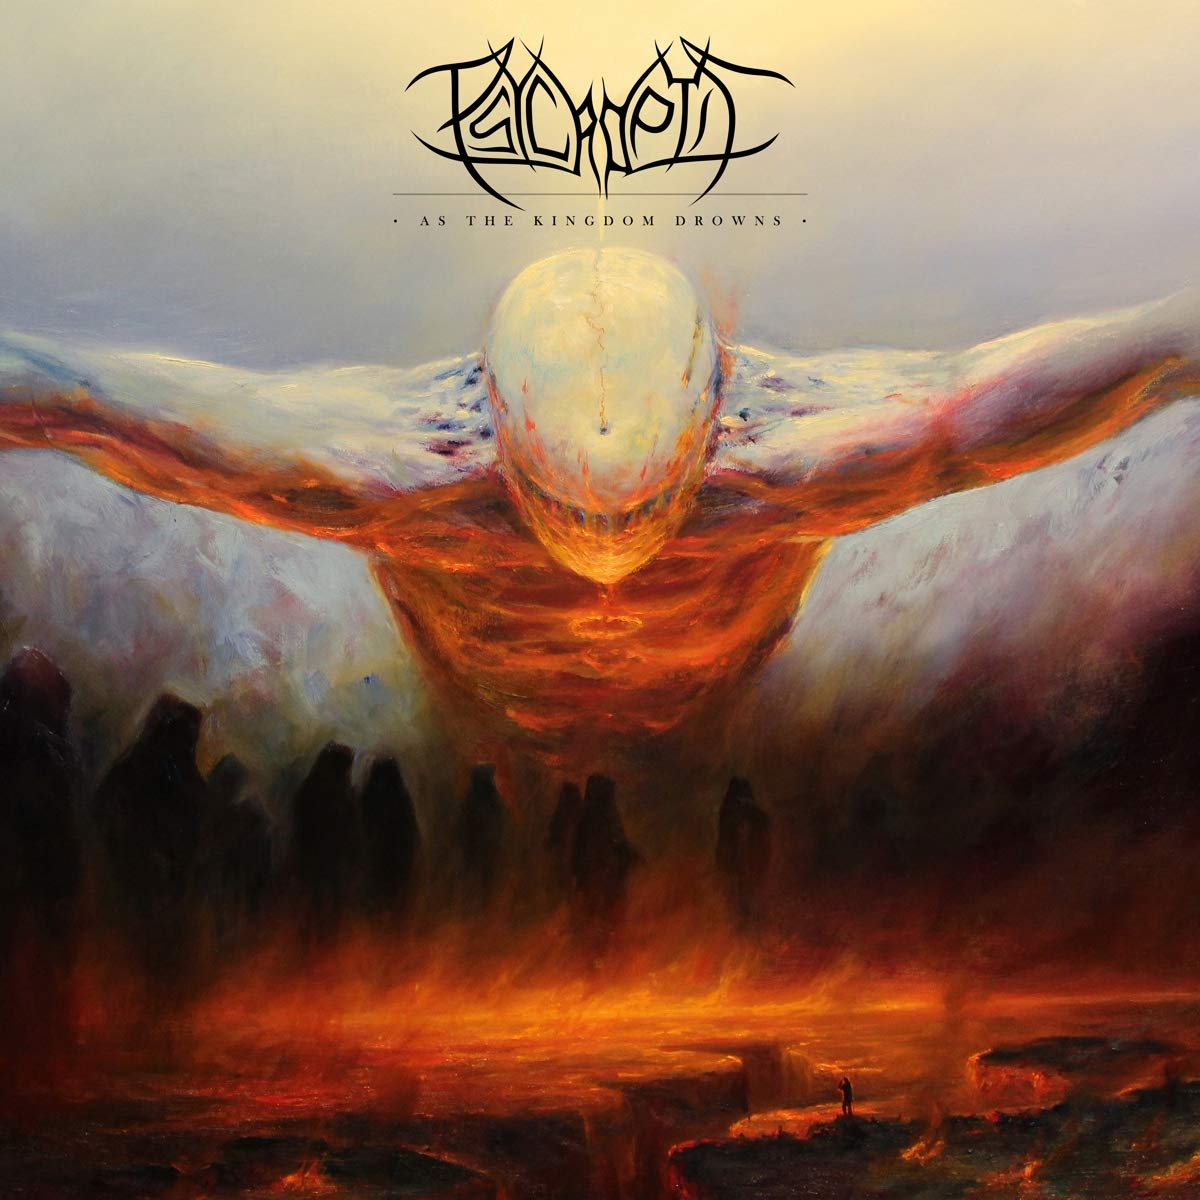 Psycroptic - As The Kingdom Drowns (2018) [FLAC] Download